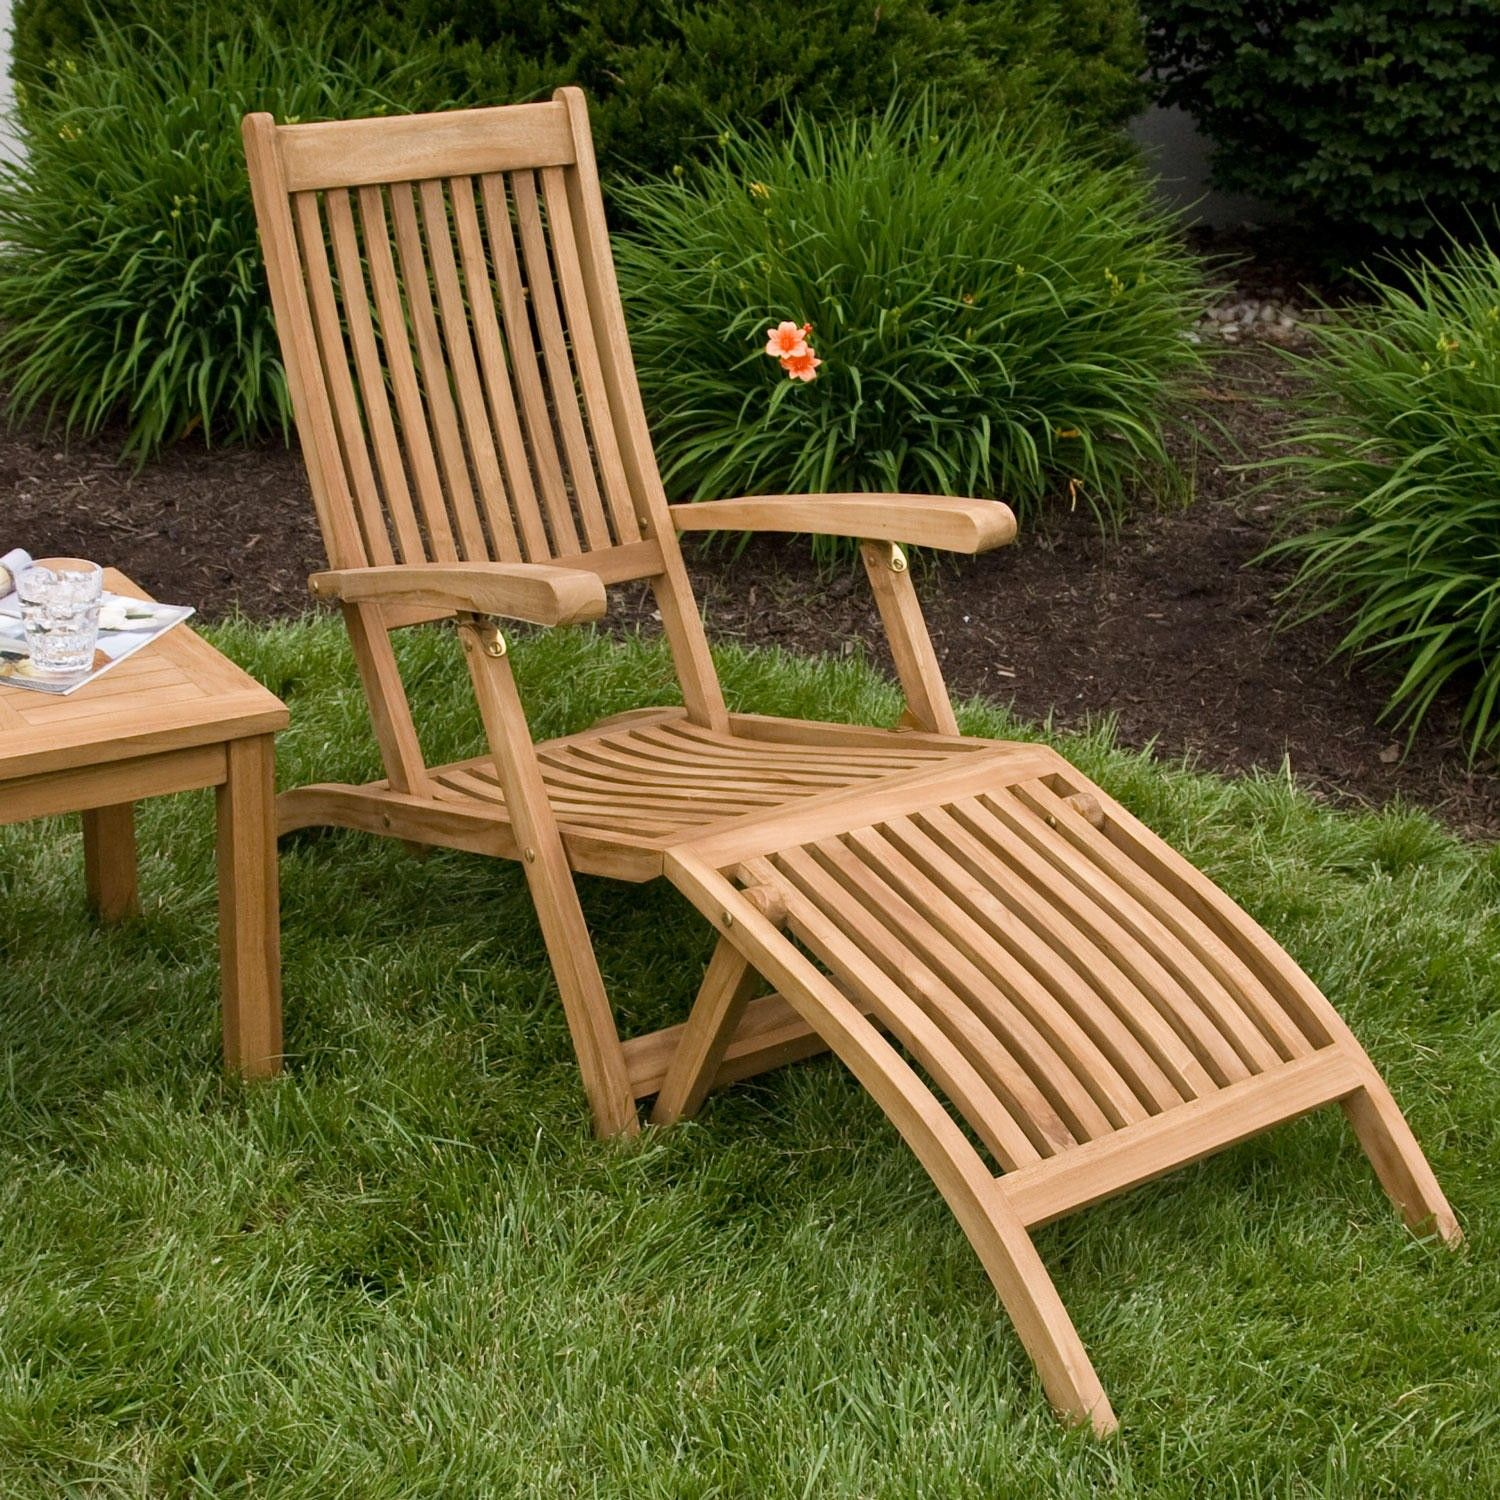 Teak Chaise Lounge Chairs Pin By Martha Ladies On Ideas For The House Wood Patio Furniture